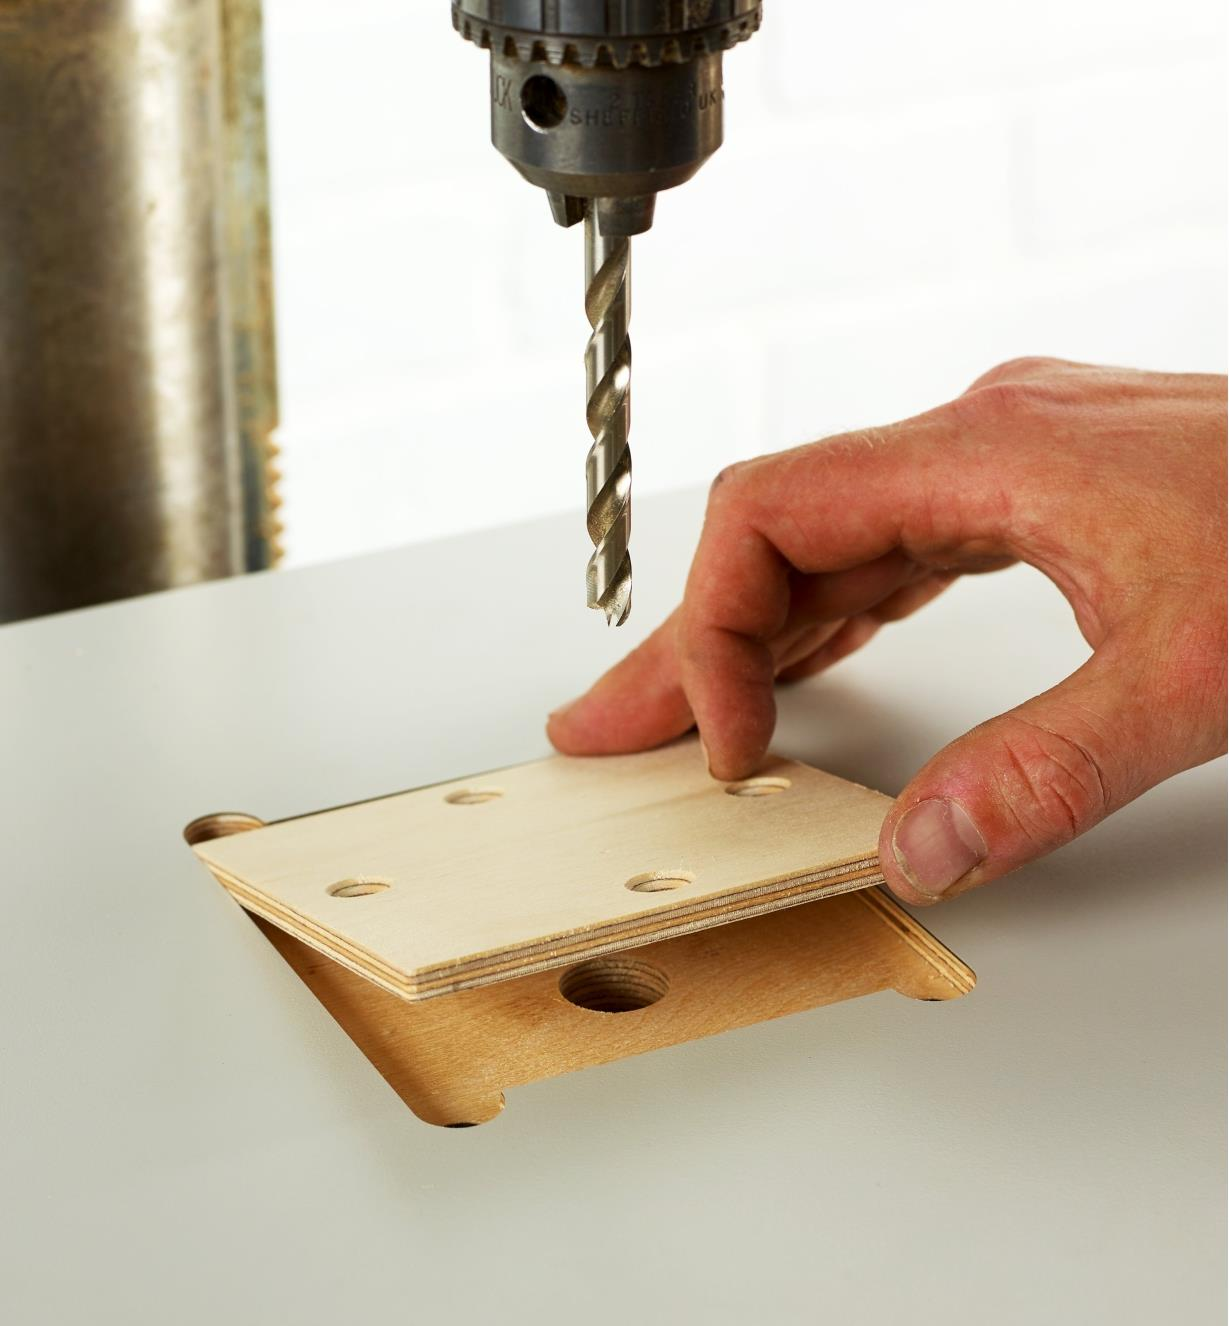 Setting the removable wooden insert into the table top to support through-drilling